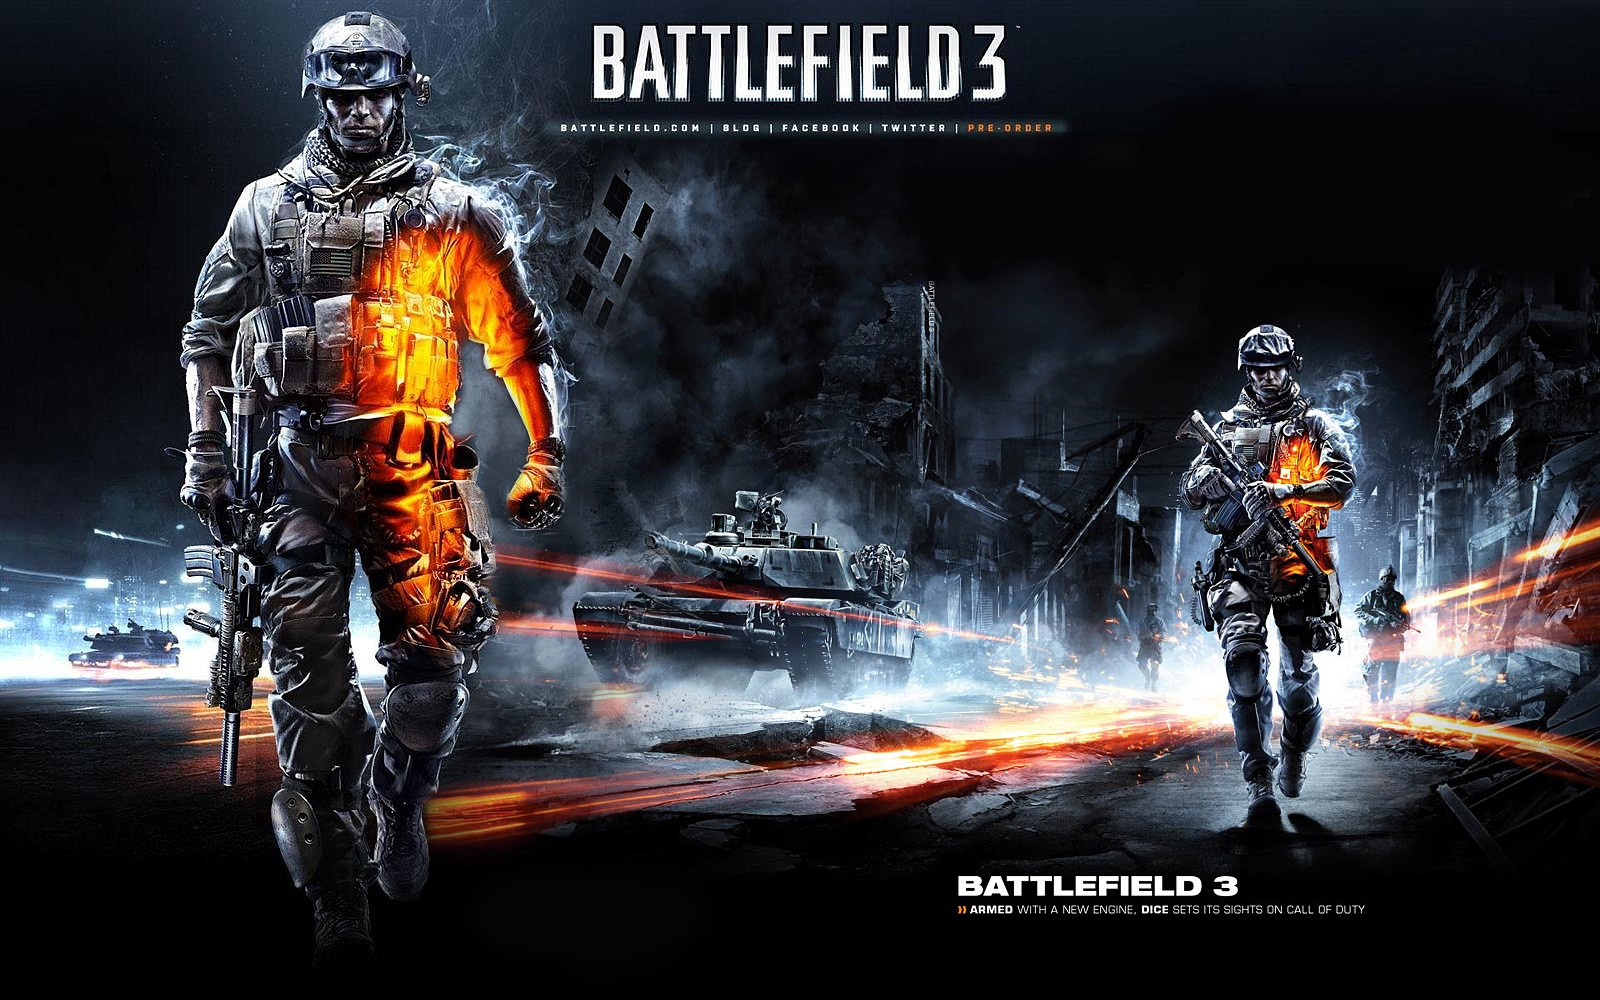 Battlefield 3 Wallpaper by marvnation